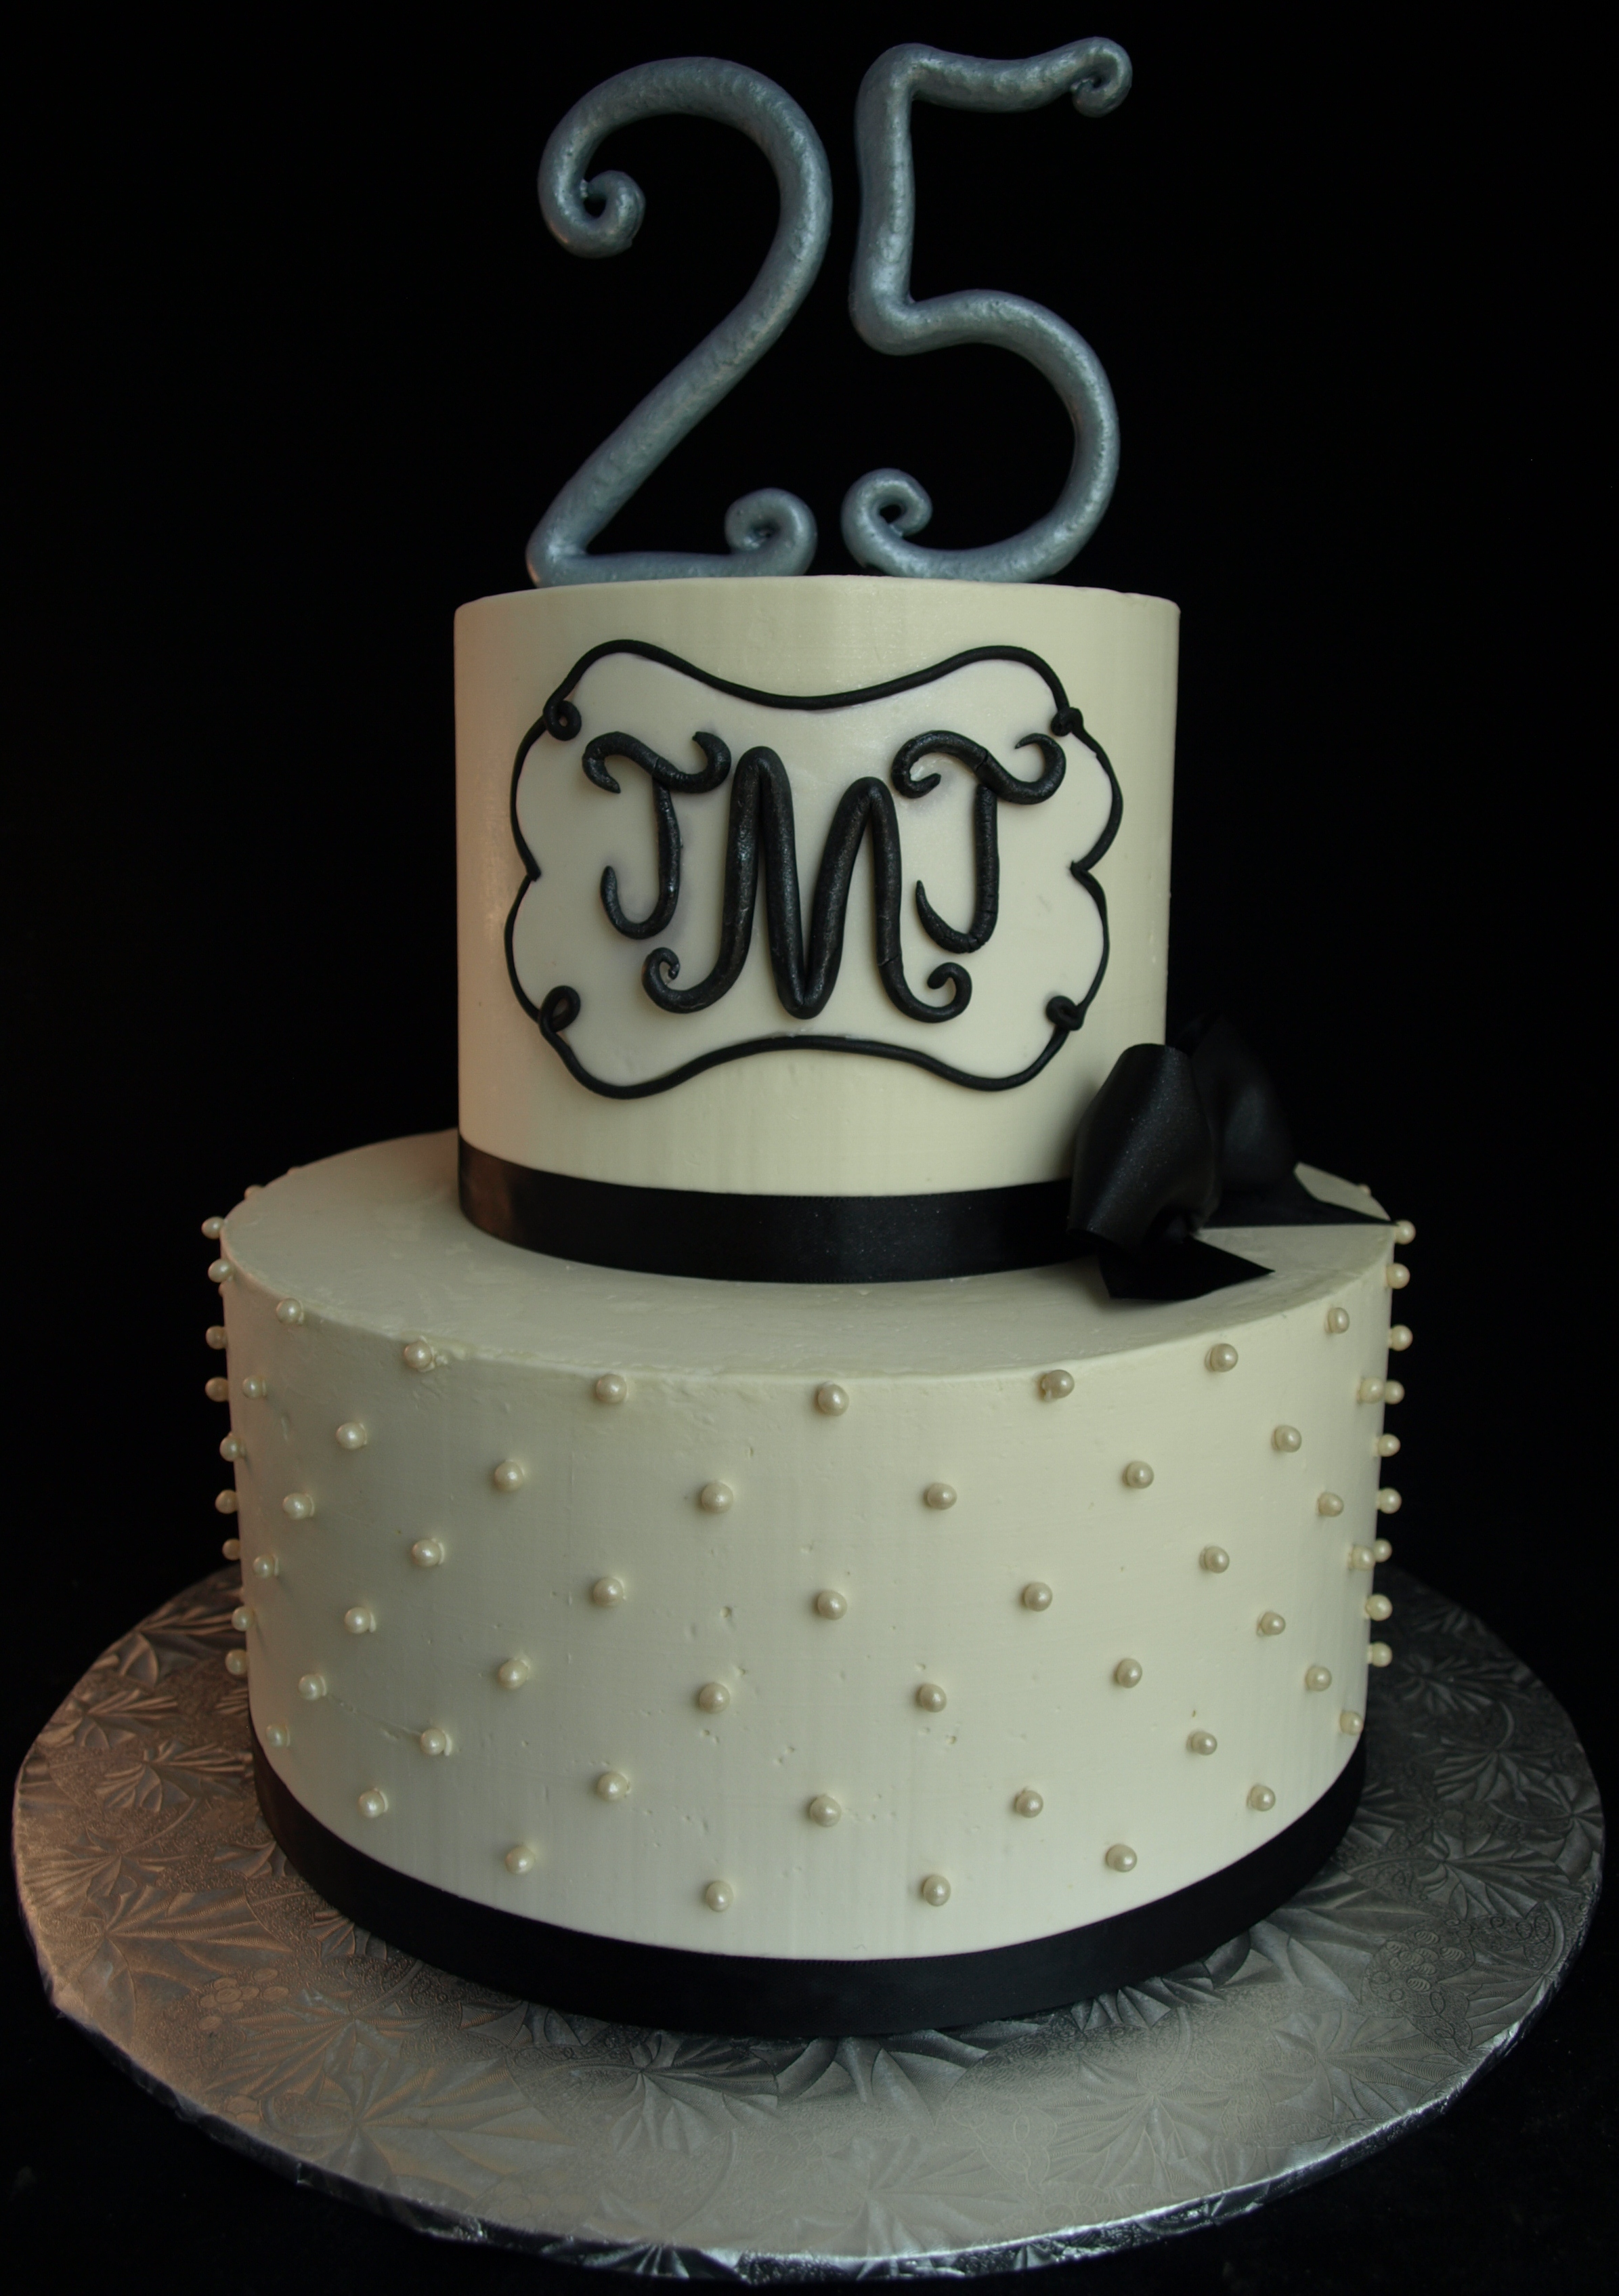 25th or Silver anniversary cake with monogram Portland oregon